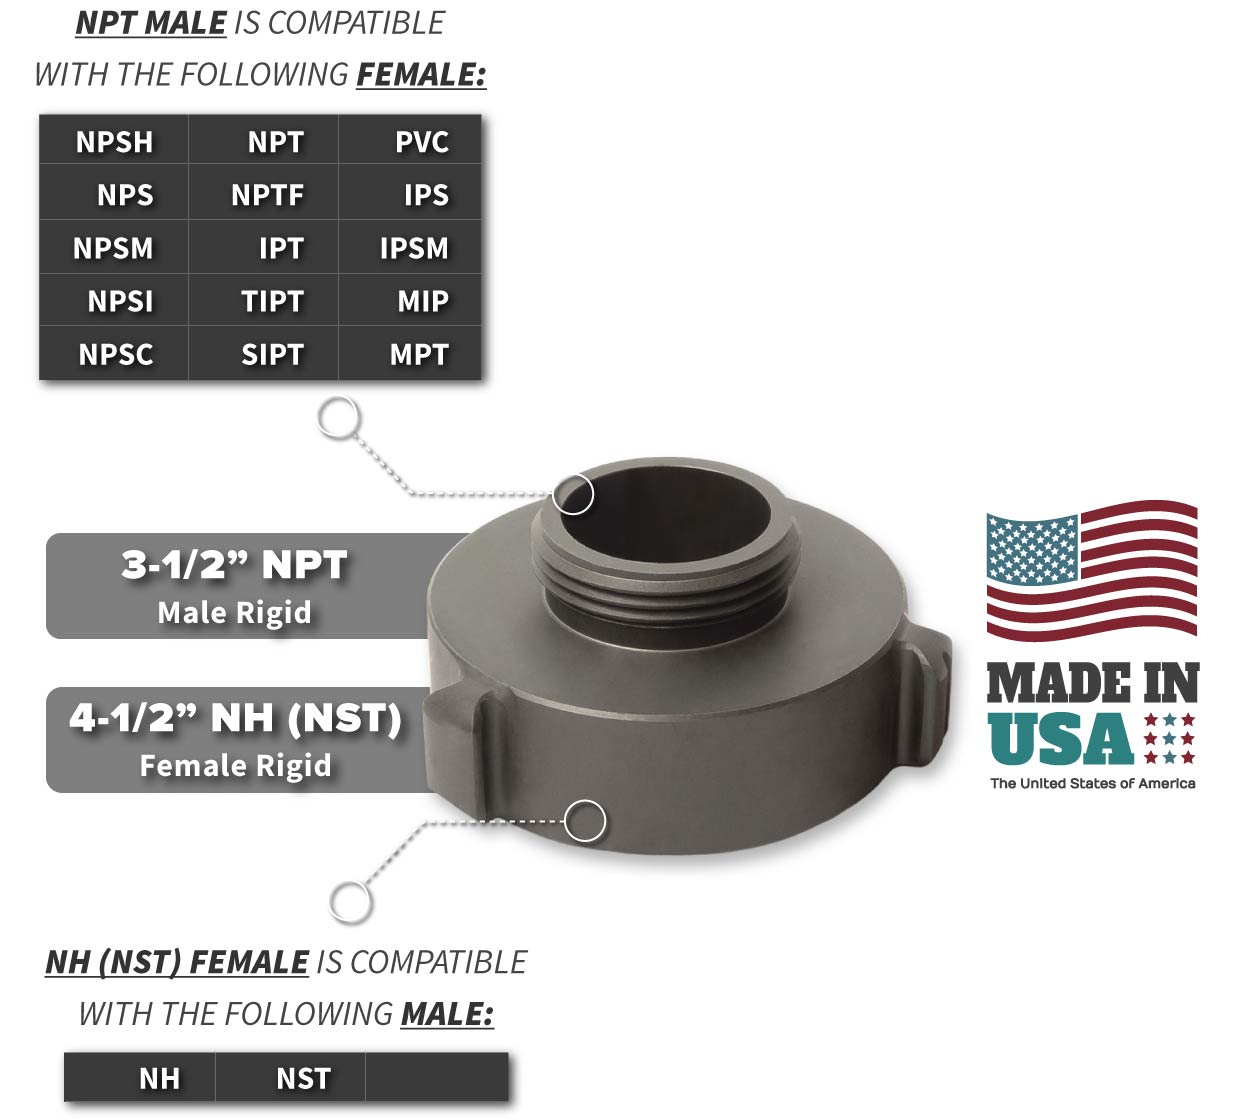 4.5 Inch NH-NST Female x 3.5 Inch NPT Male Compatibility Thread Chart